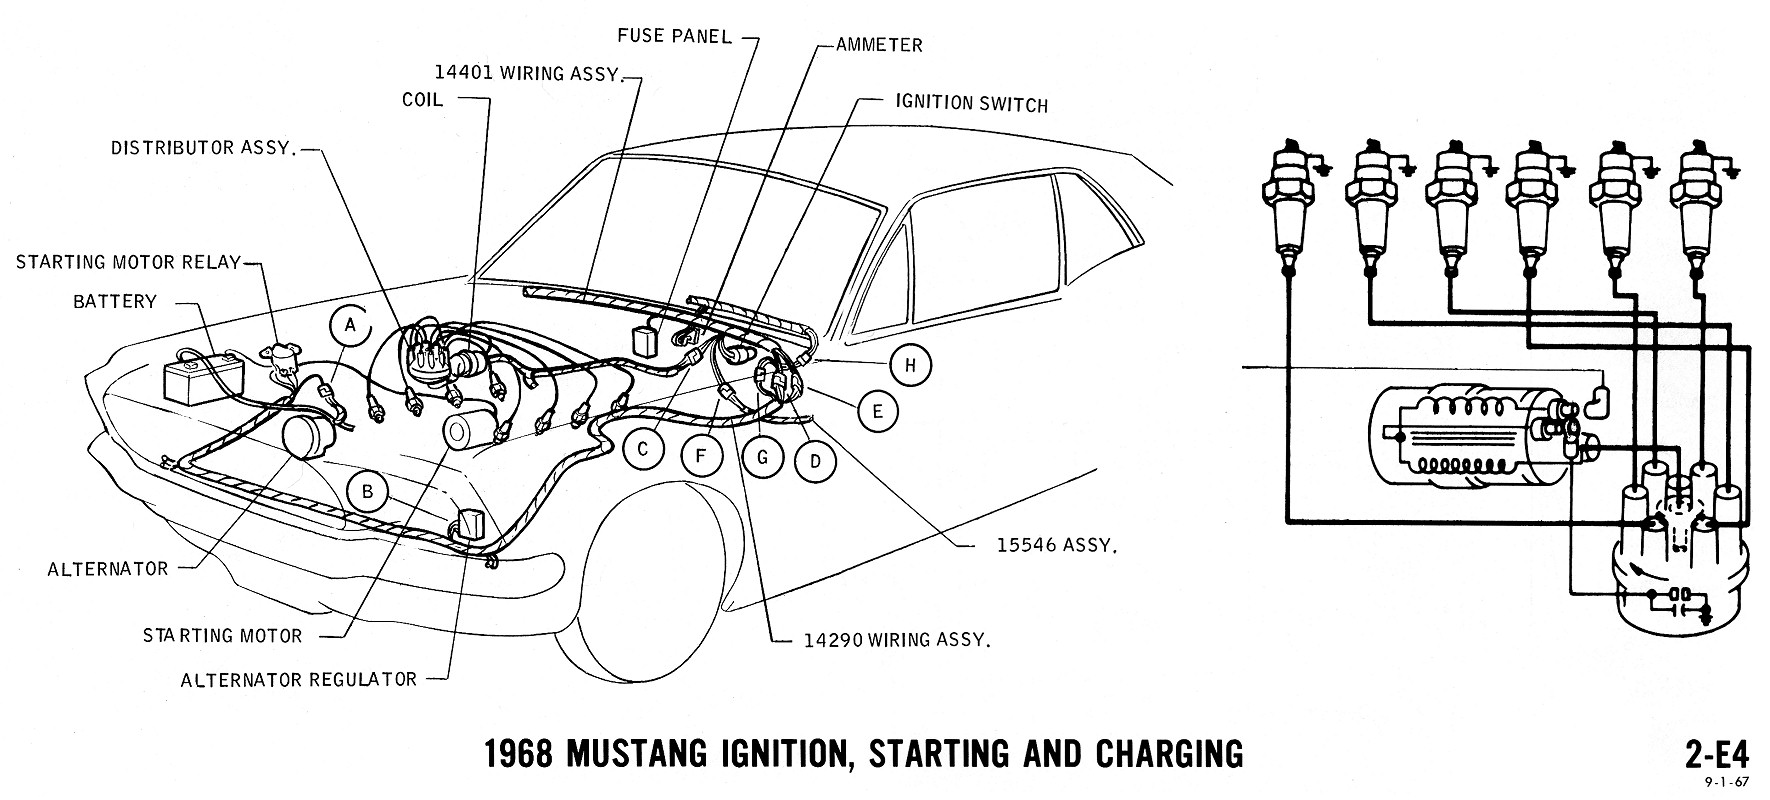 1968 mustang wiring diagram ignition starting charging 2 1968 mustang wiring diagrams and vacuum schematics average joe 1965 ford mustang wiring diagrams at crackthecode.co